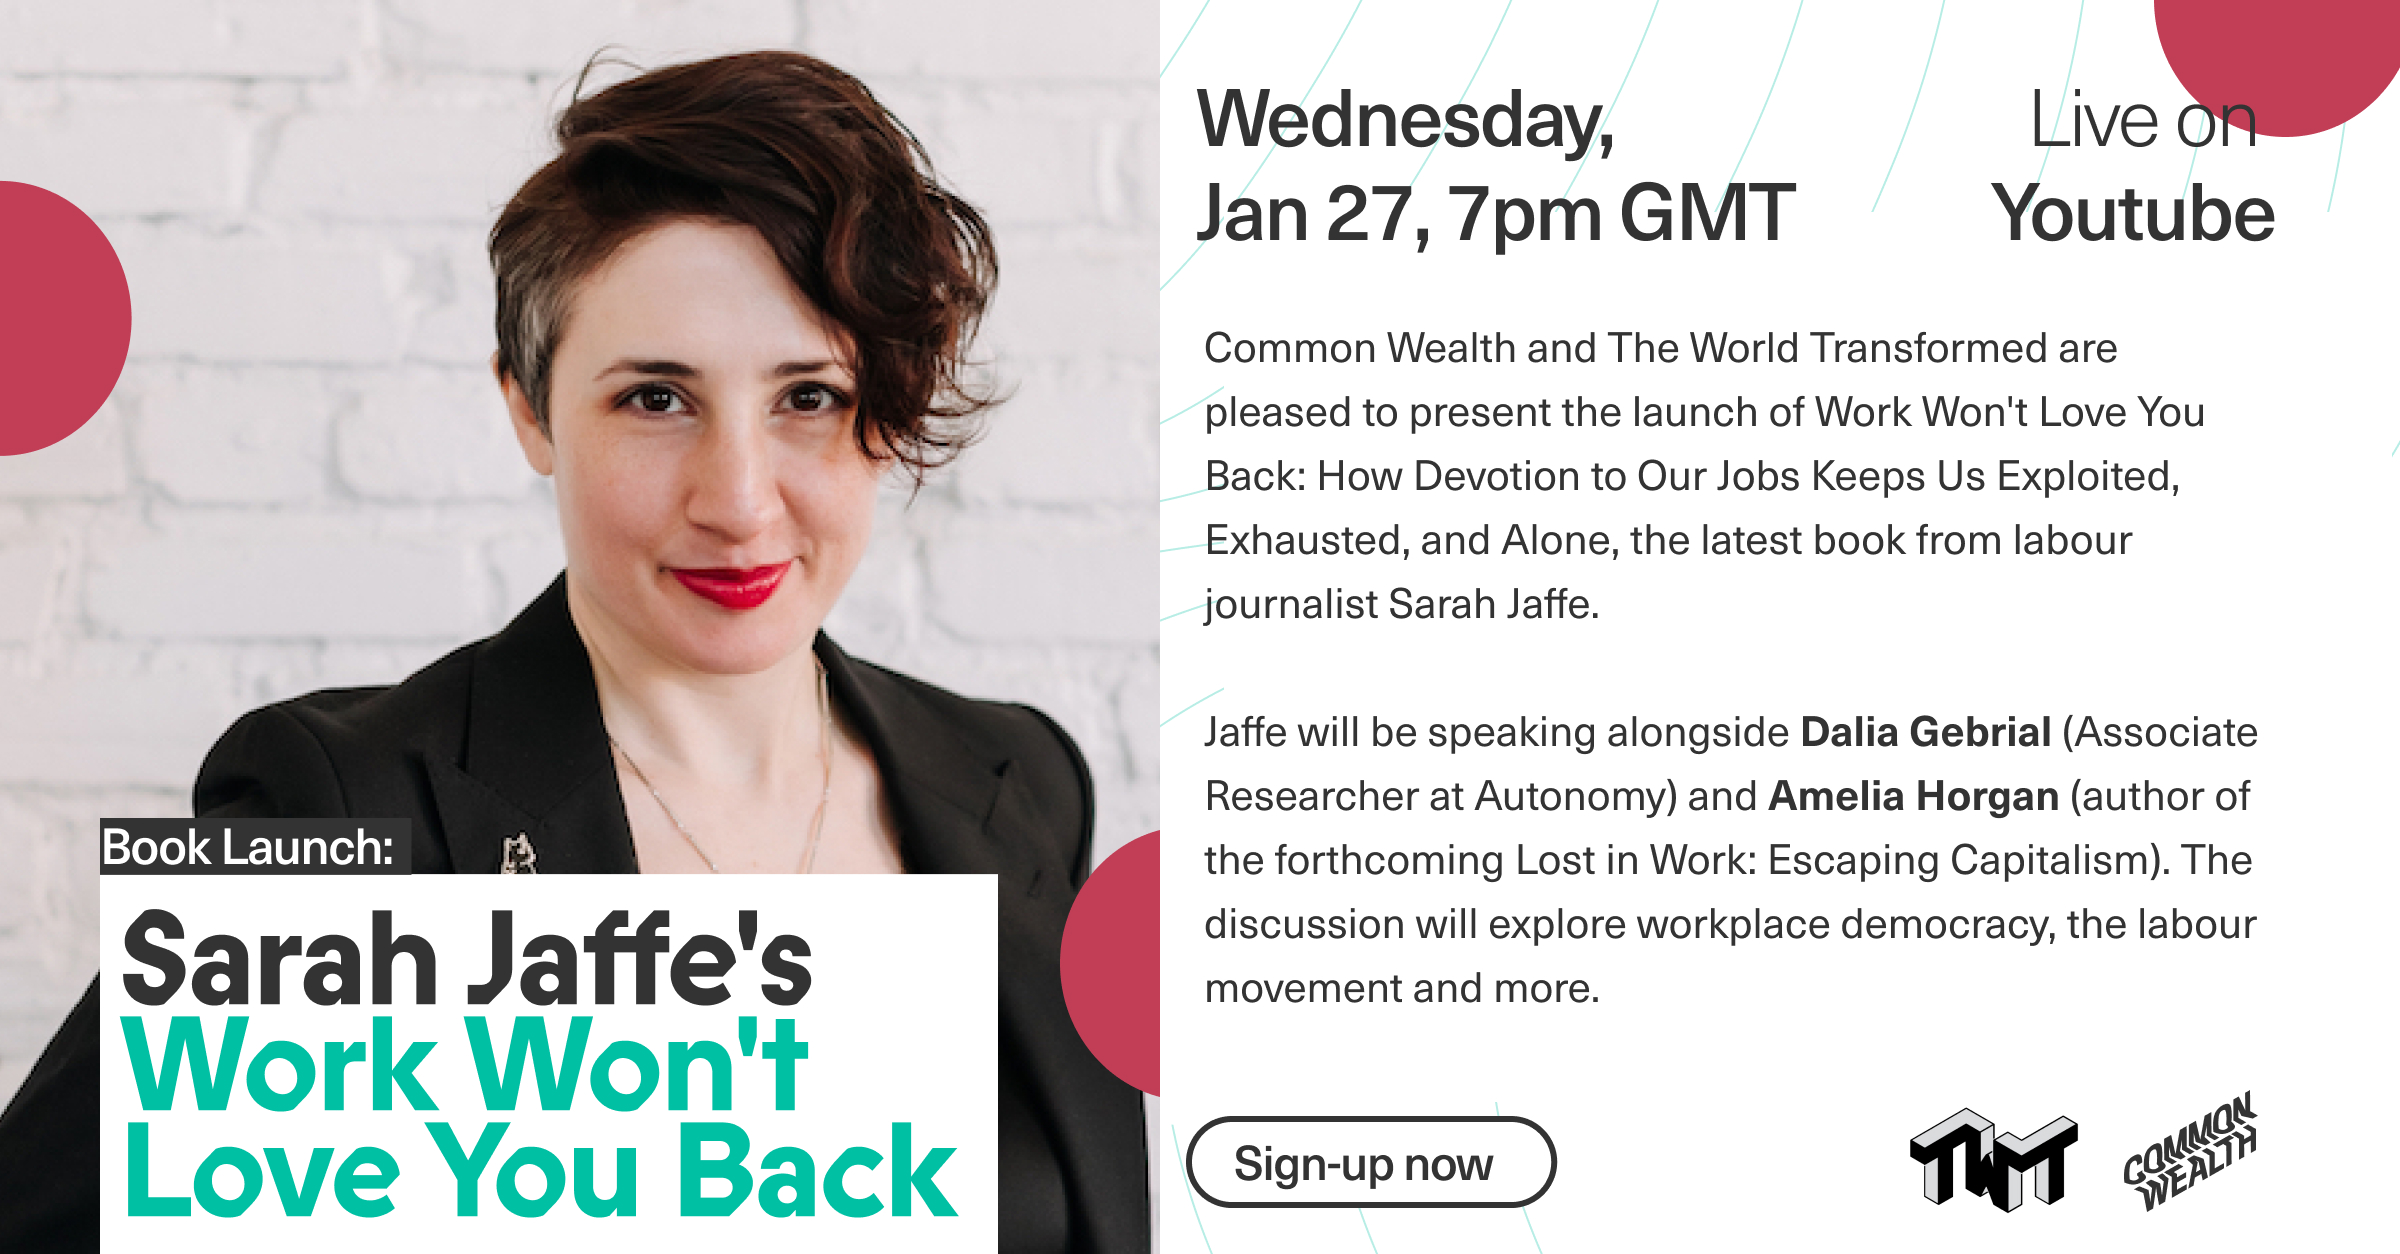 BOOK LAUNCH! 'Work Won't Love You Back' by Sarah Jaffe